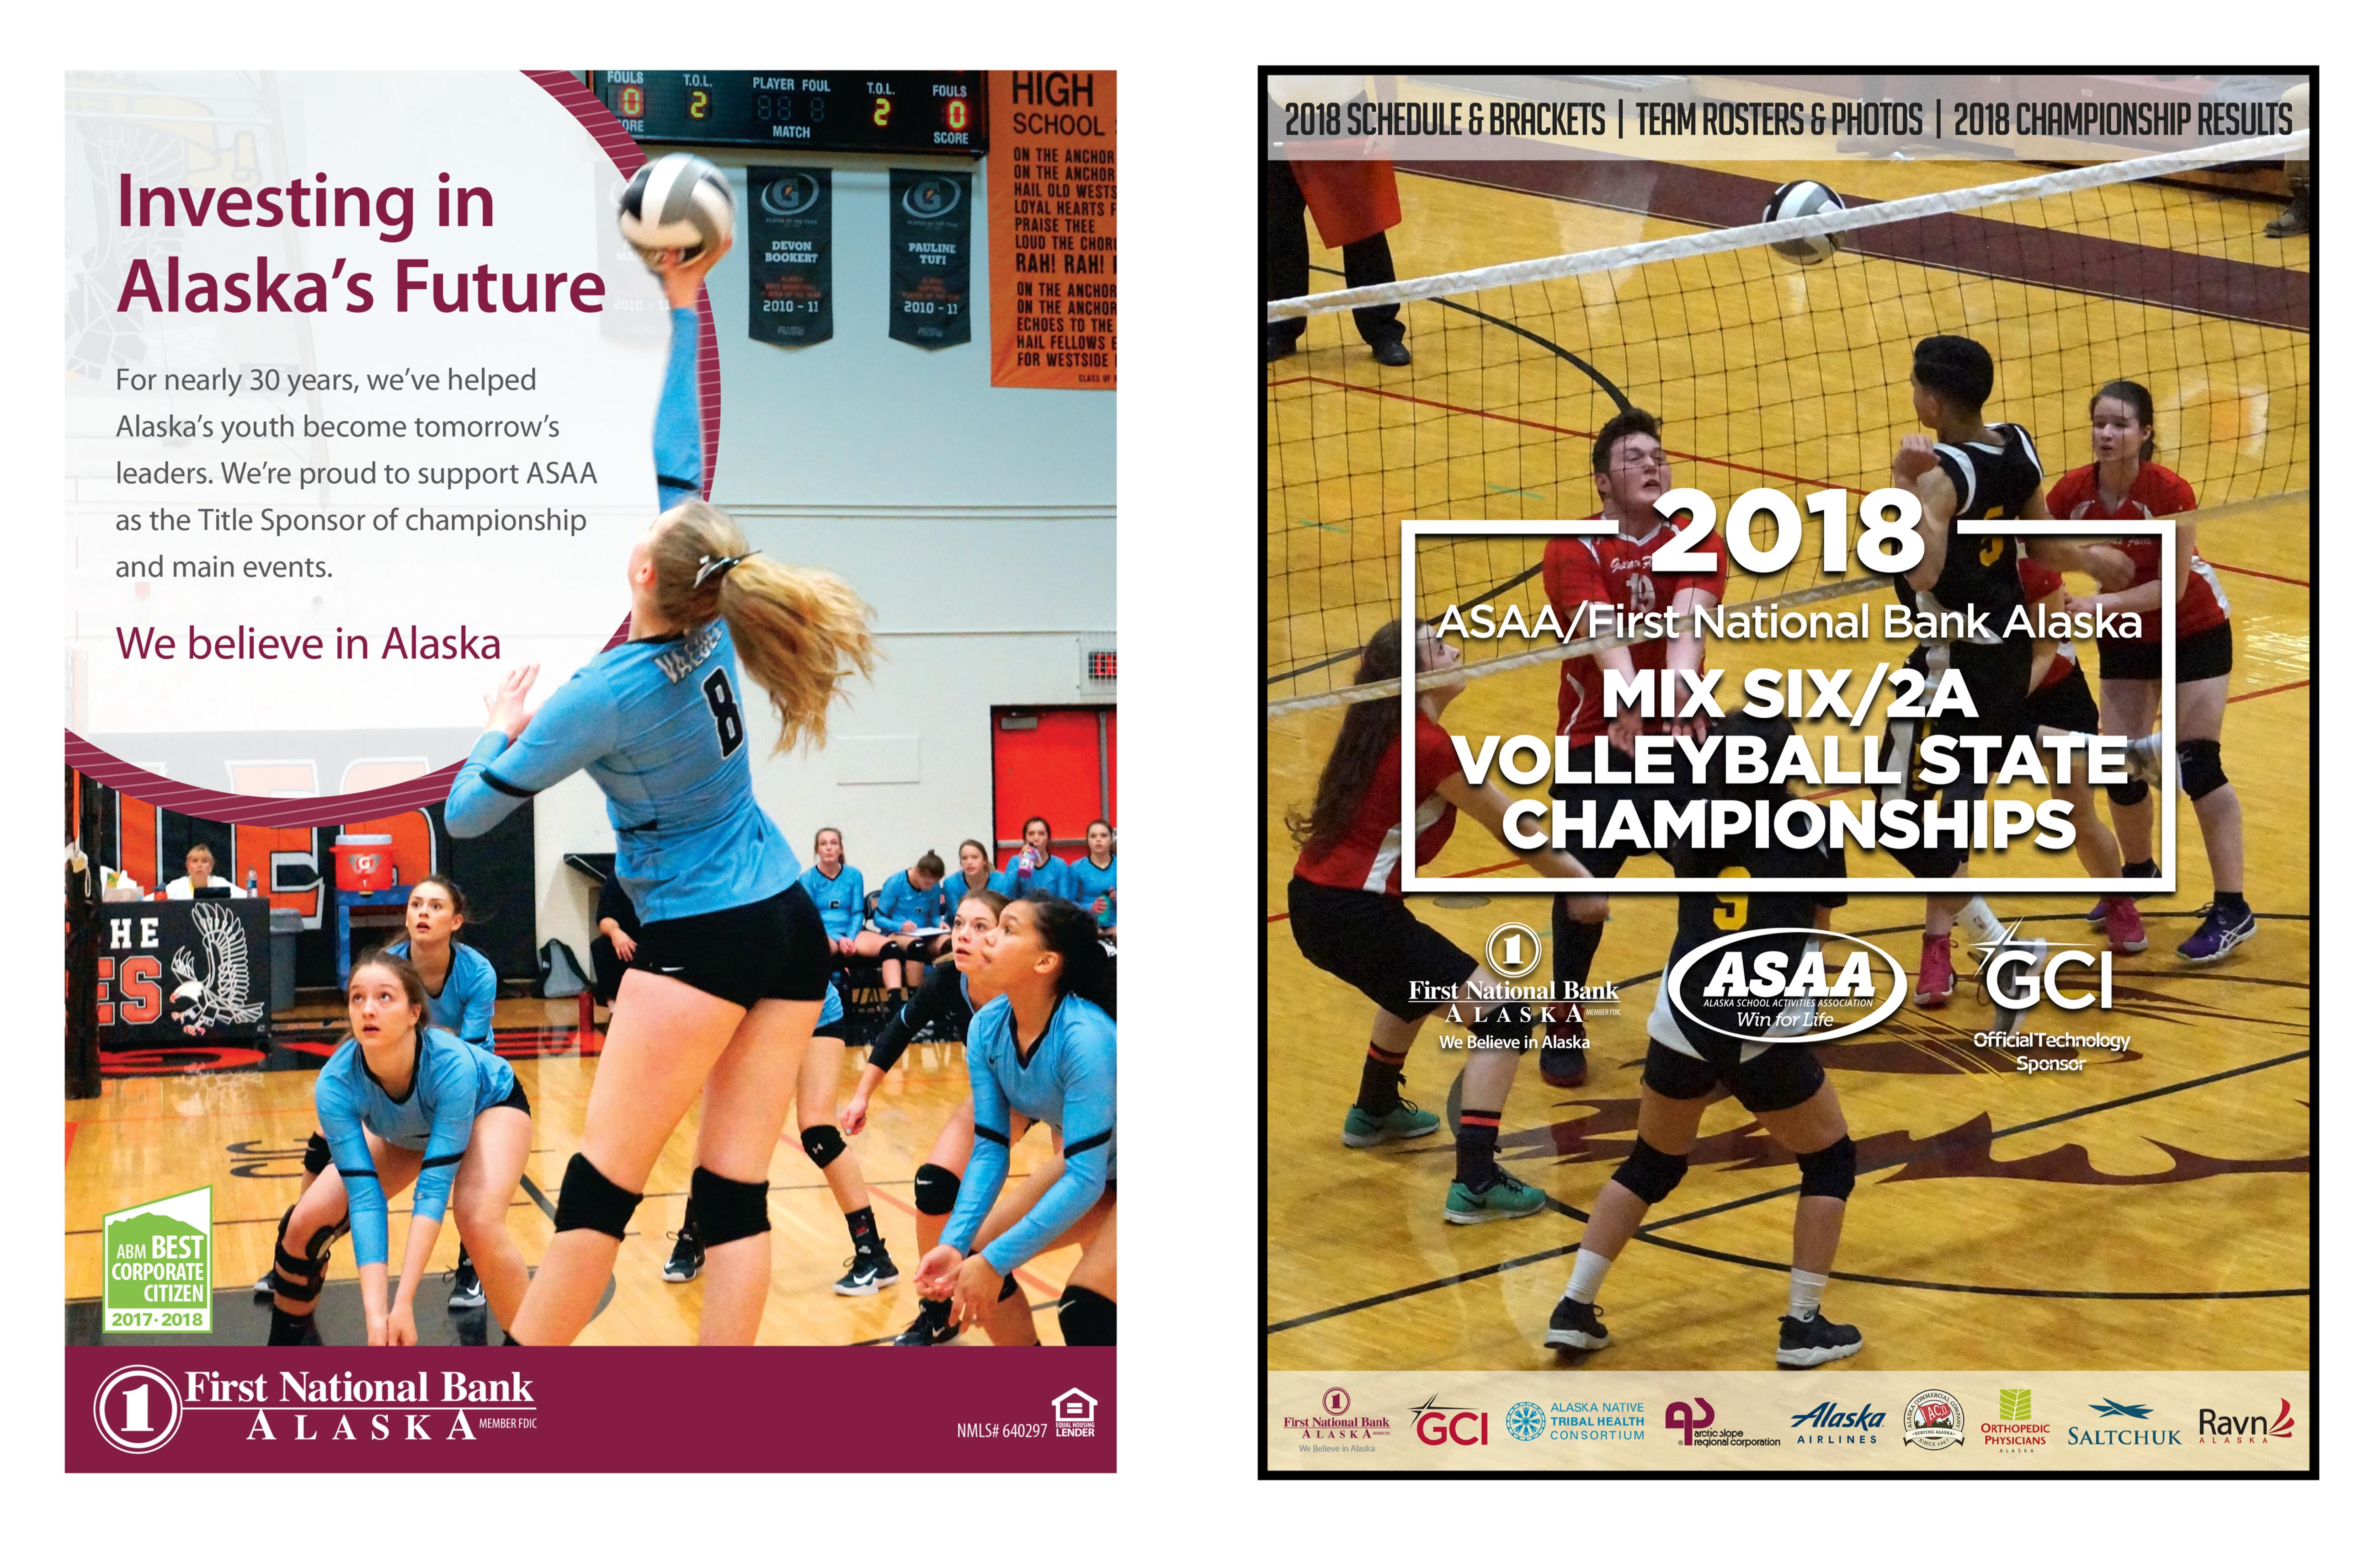 2018 ASAA/First National Bank Alaska Mix Six/2A Volleyball State Championships Program cover image